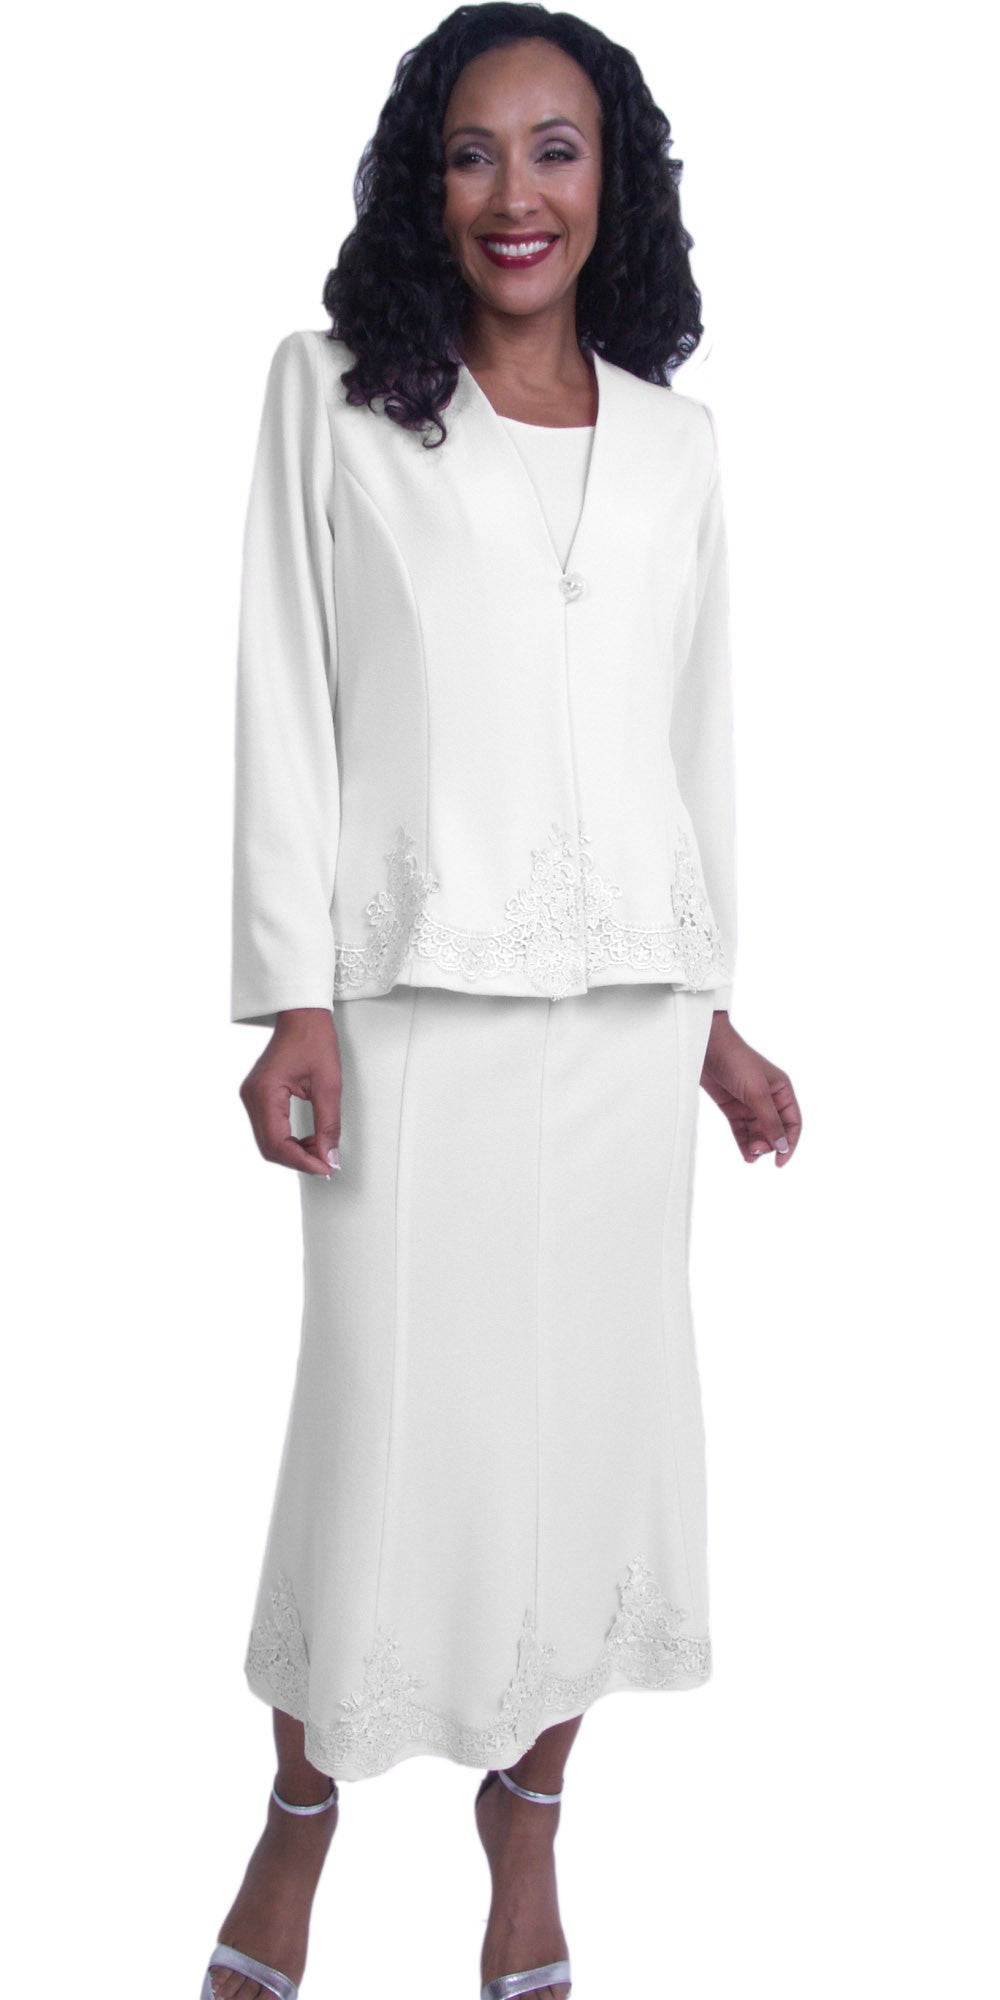 White Embroidered Jacket and Skirt Modest Tea-Length Dress